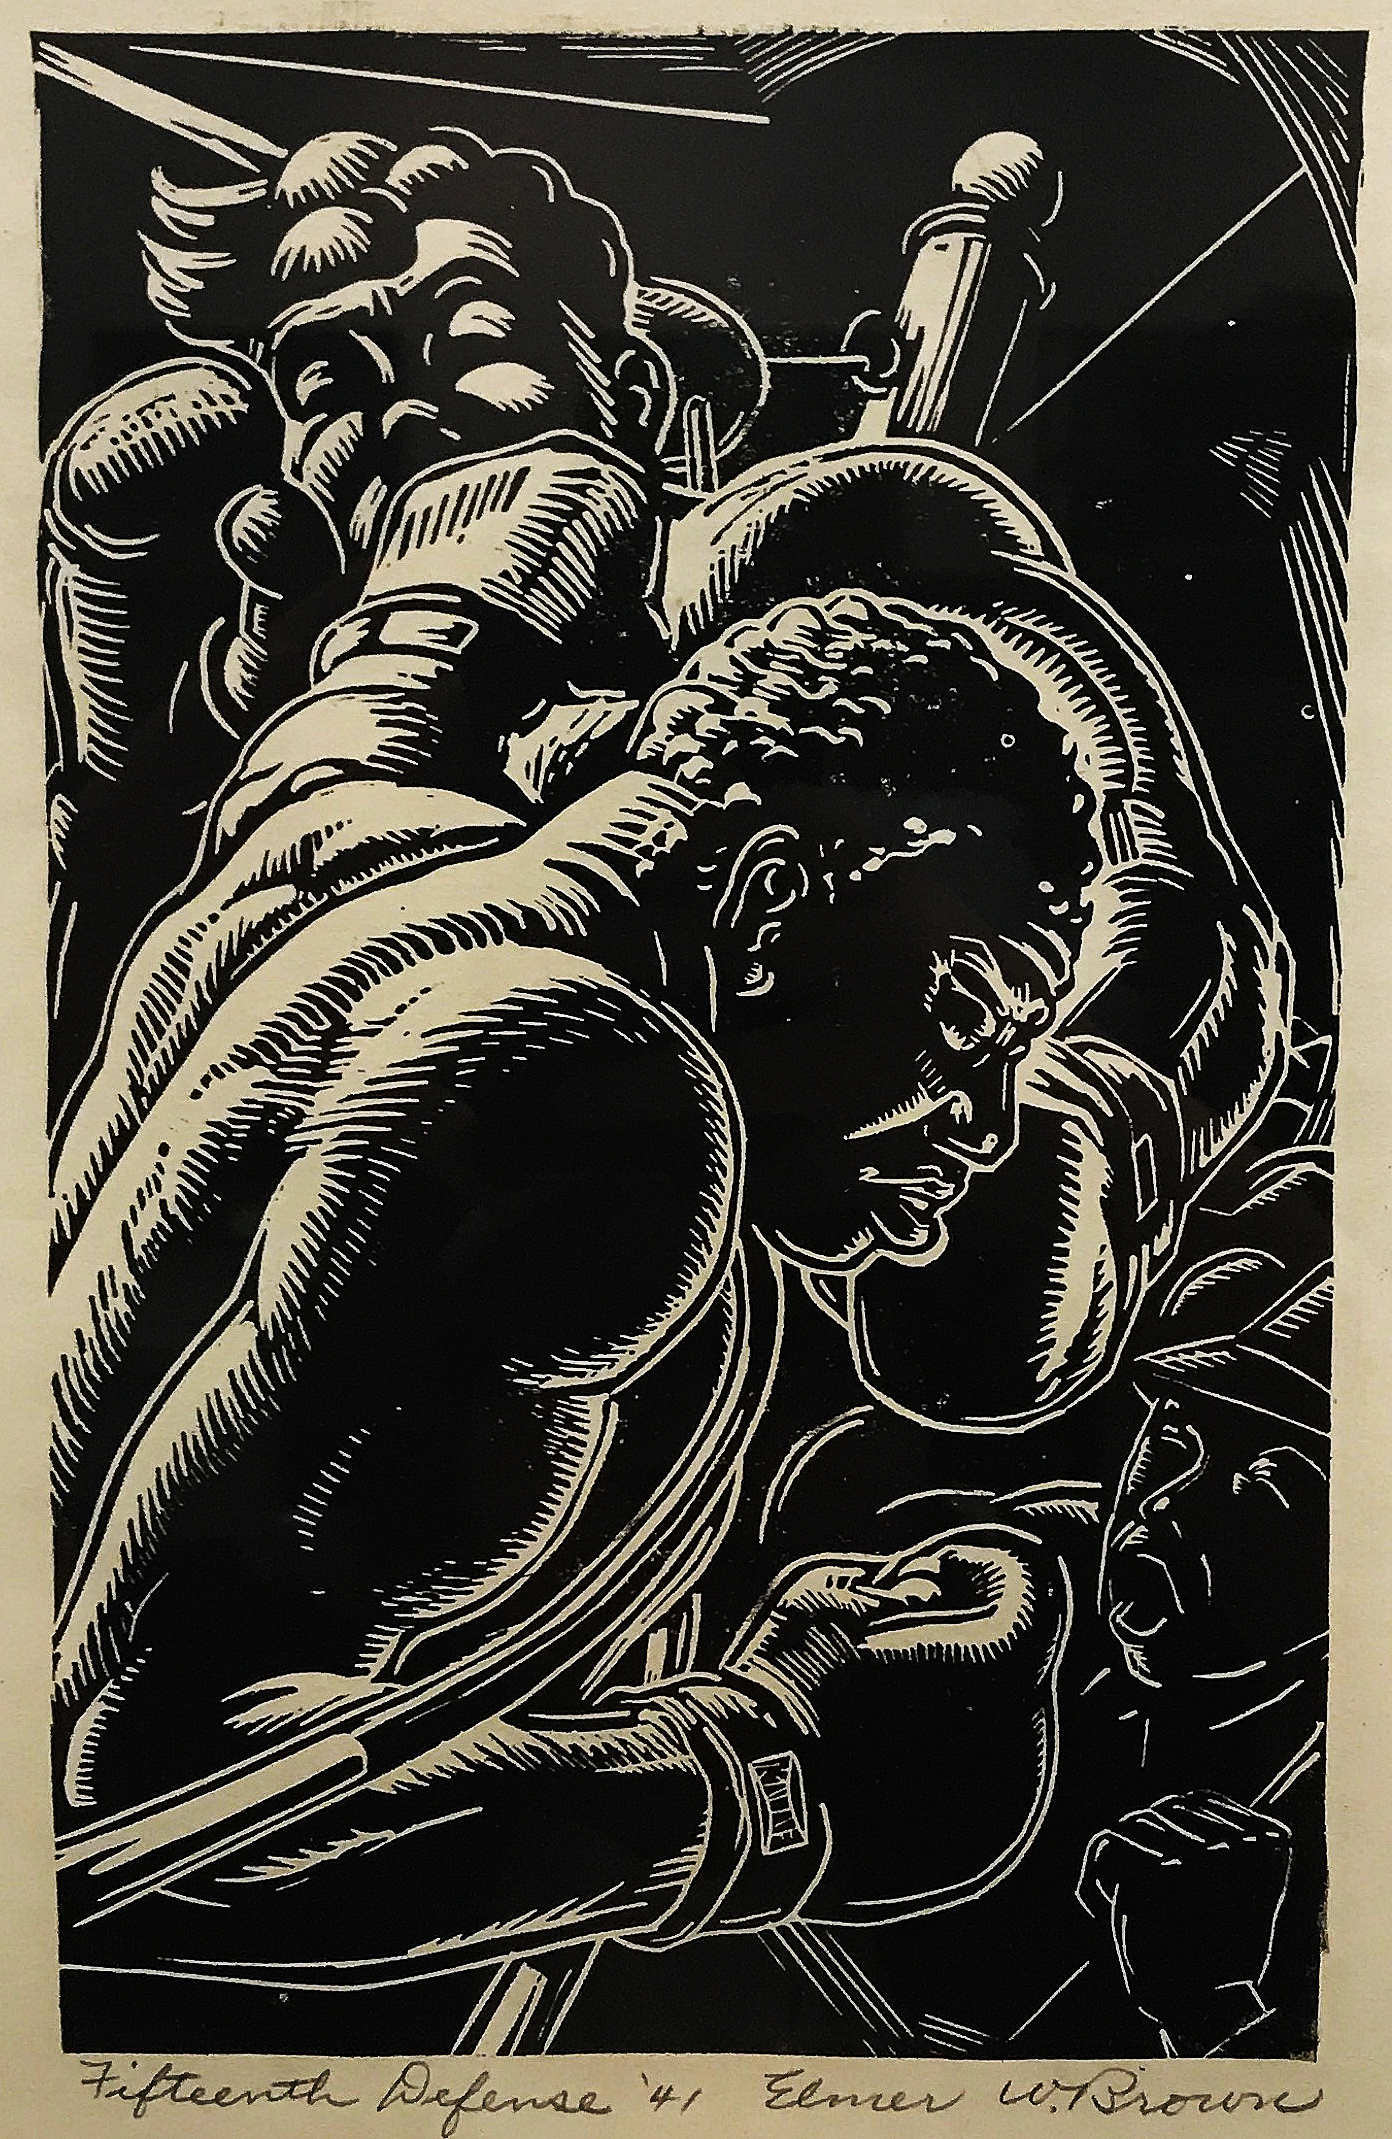 Elmer W. Brown. (1909-1971)   Fifteen Defenses , Linocut, 9 1/2 x 6inches, 1941